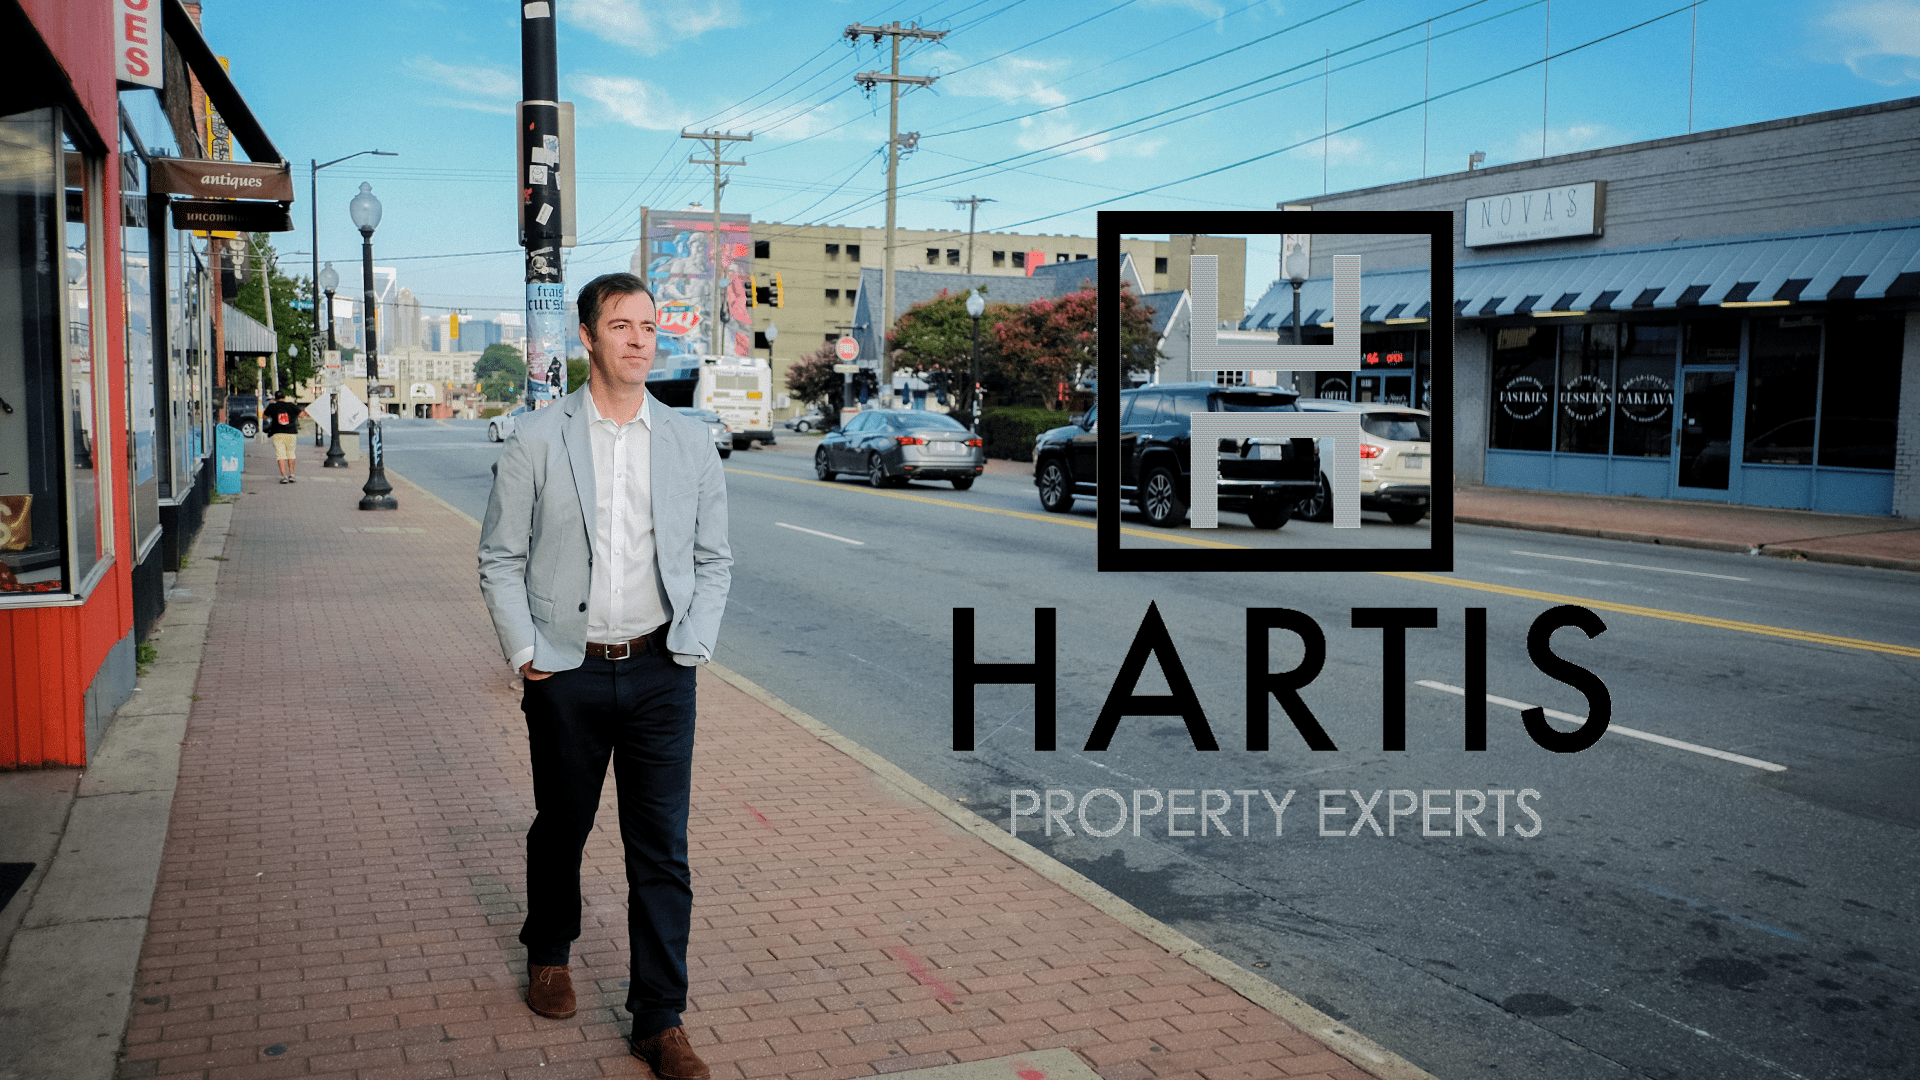 Hartis Property Experts